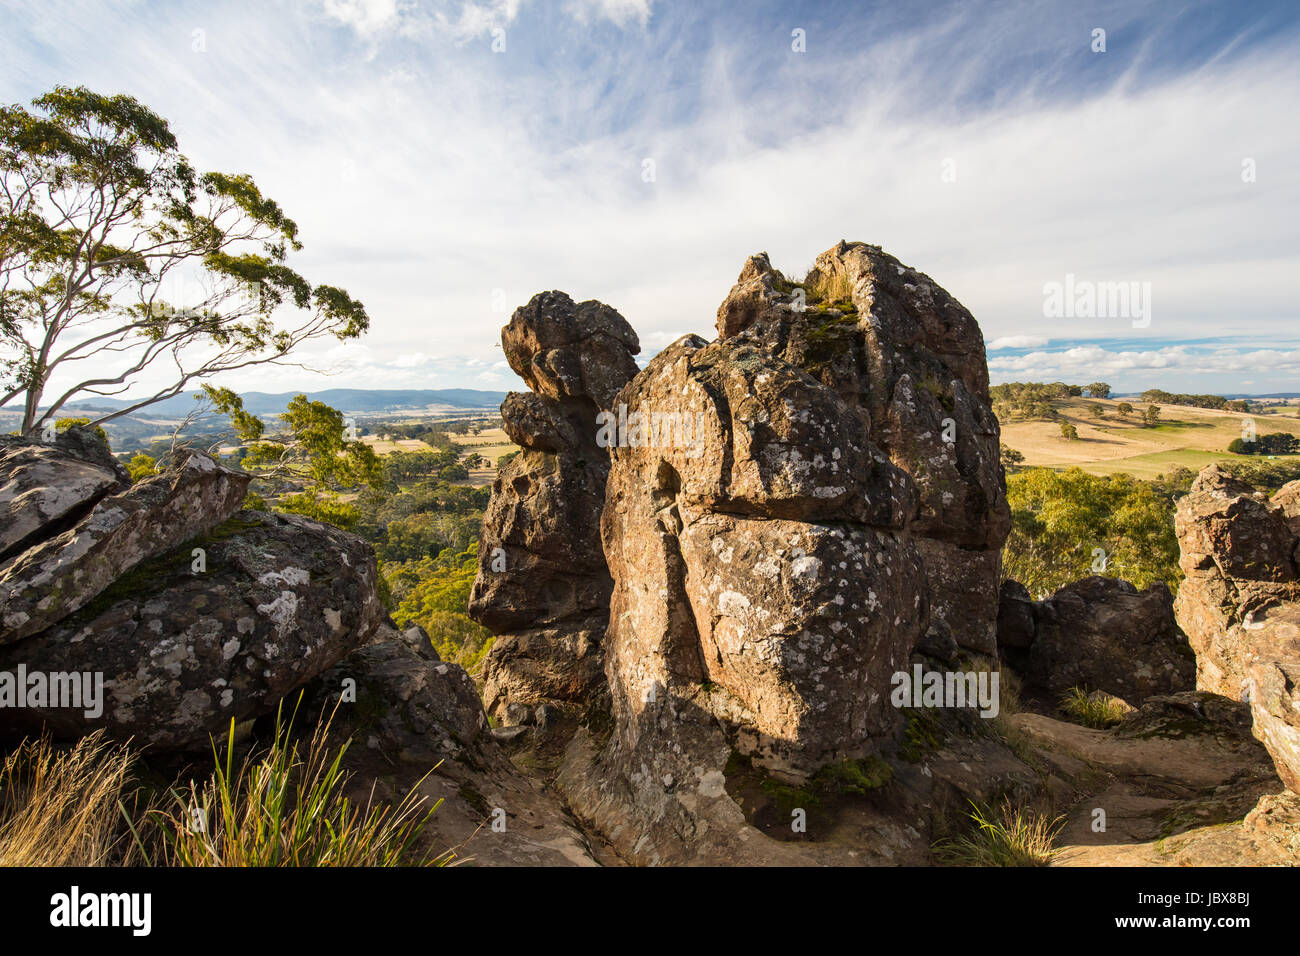 The popular tourist attraction of Hanging Rock. A volcanic group of rocks atop a hill in the Macedon ranges, Victoria, Stock Photo